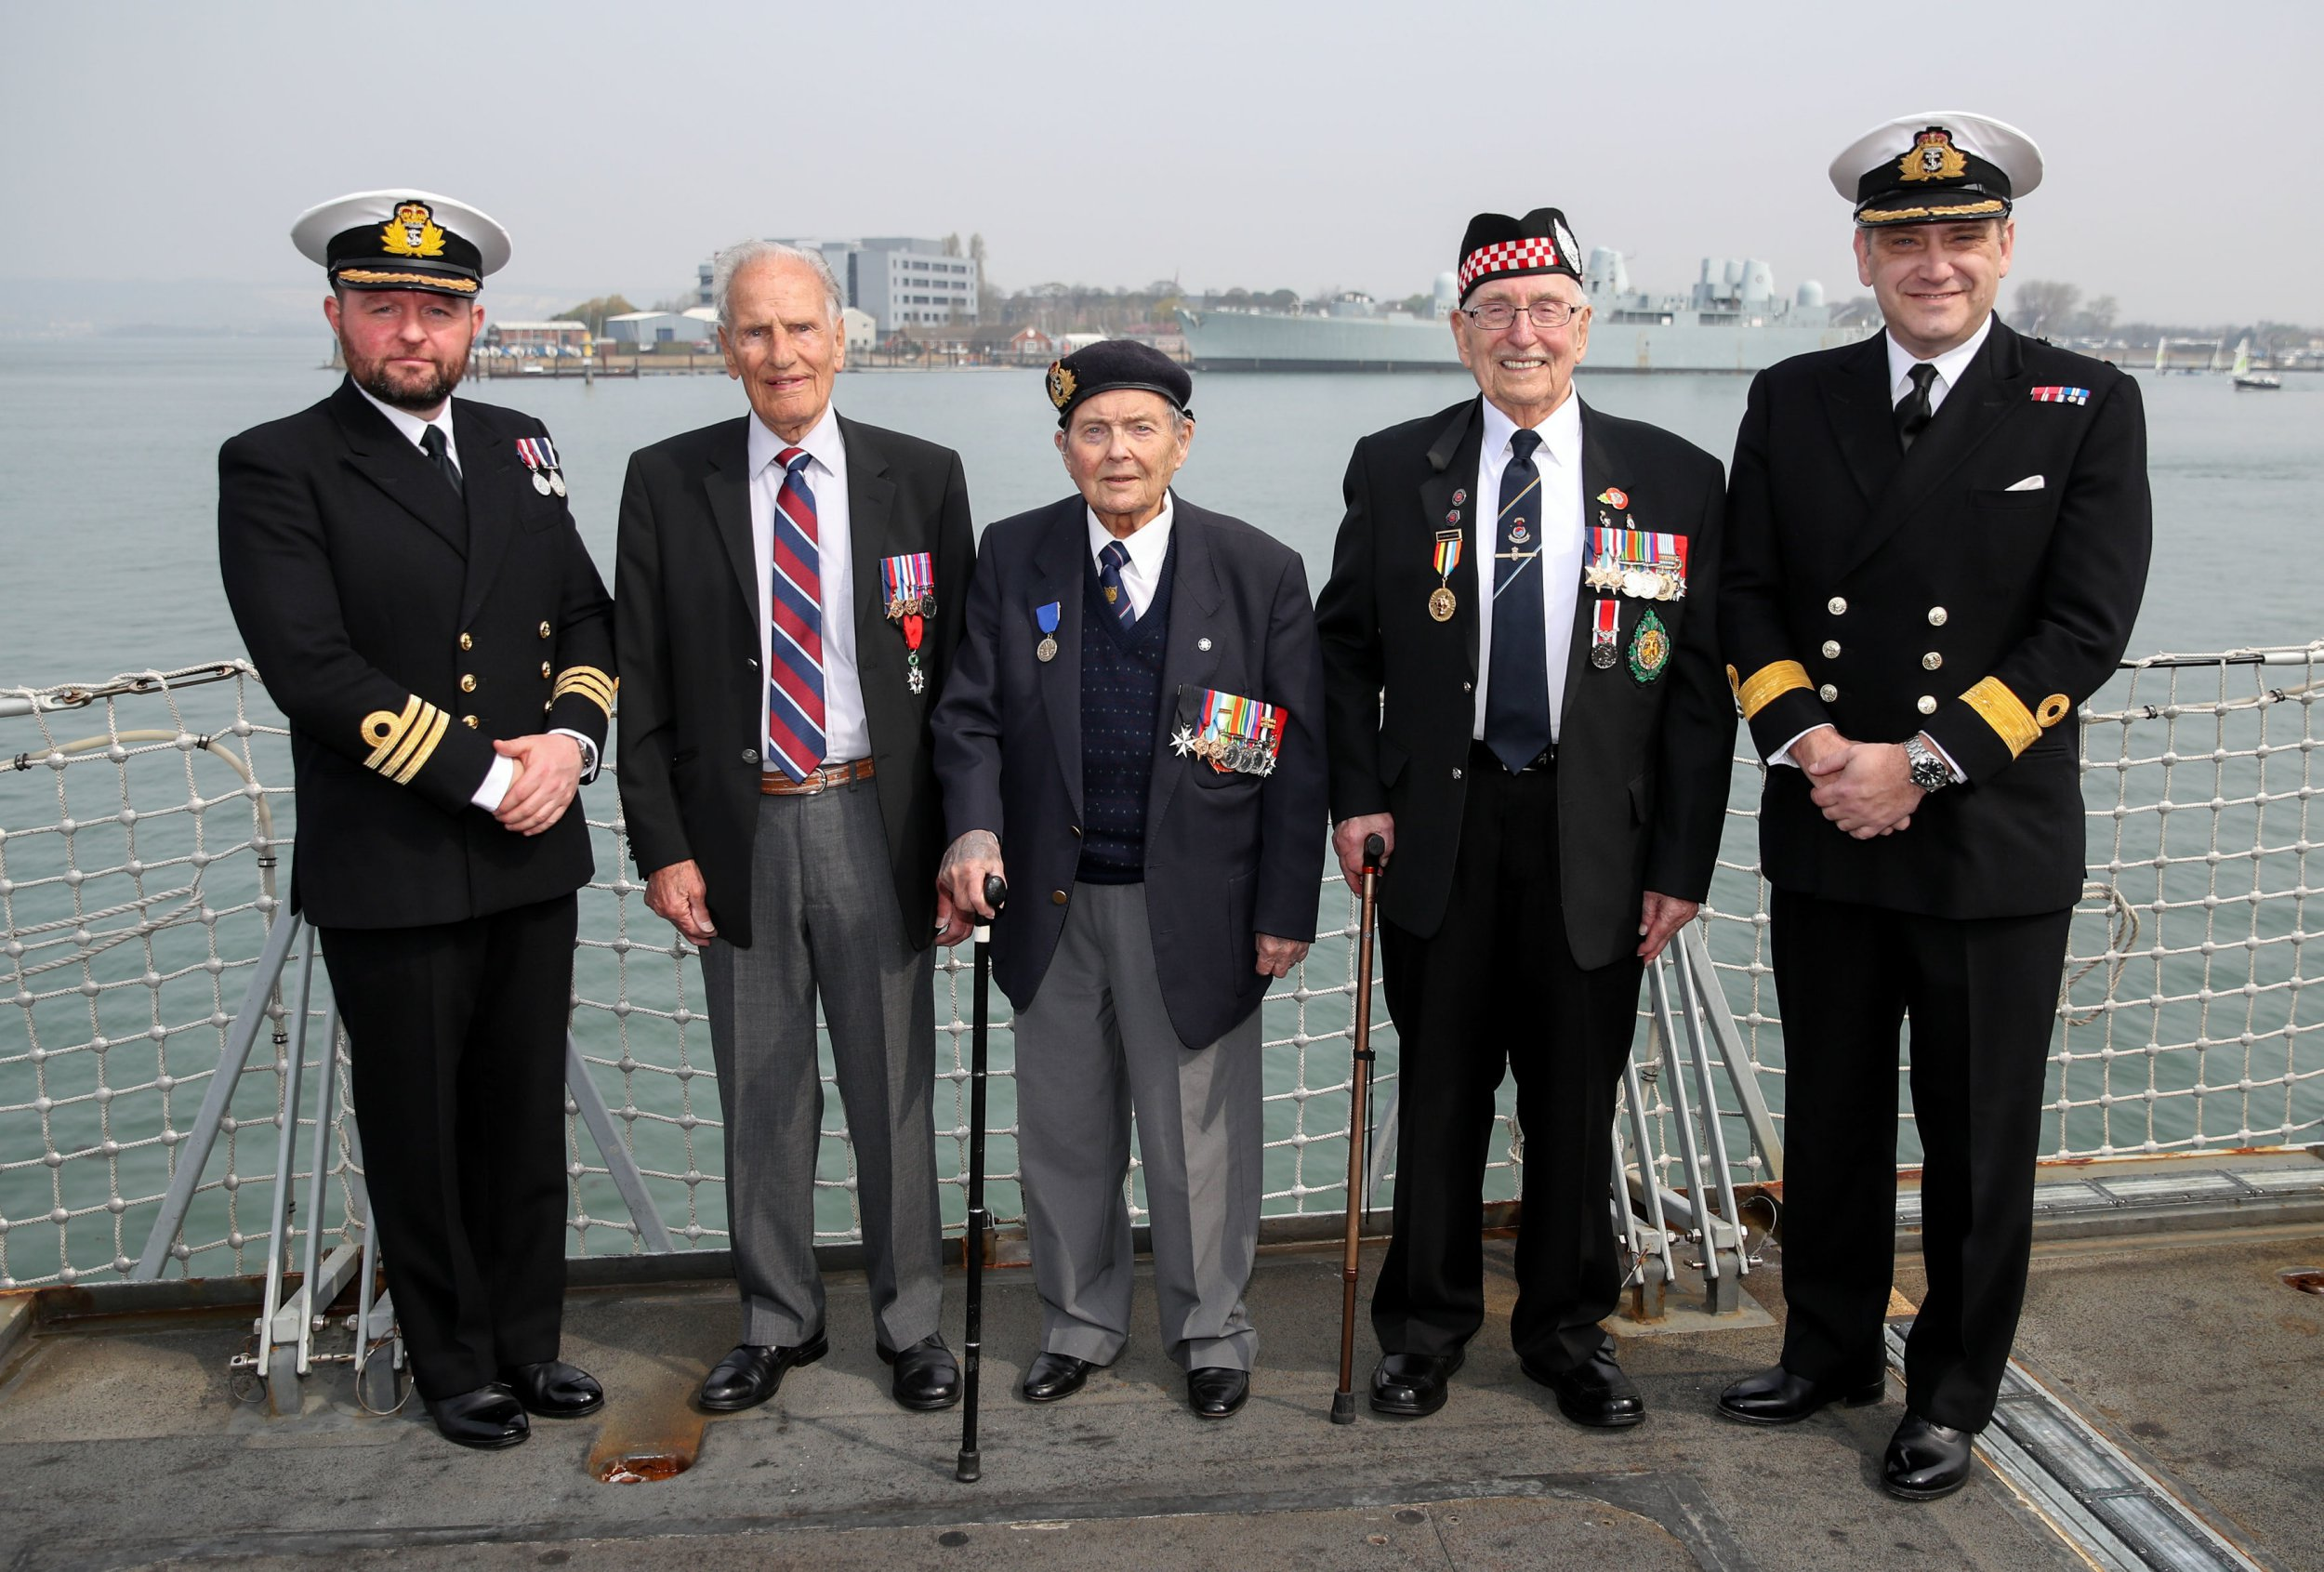 300 British D-Day veterans to return to Normandy beaches after 75 years